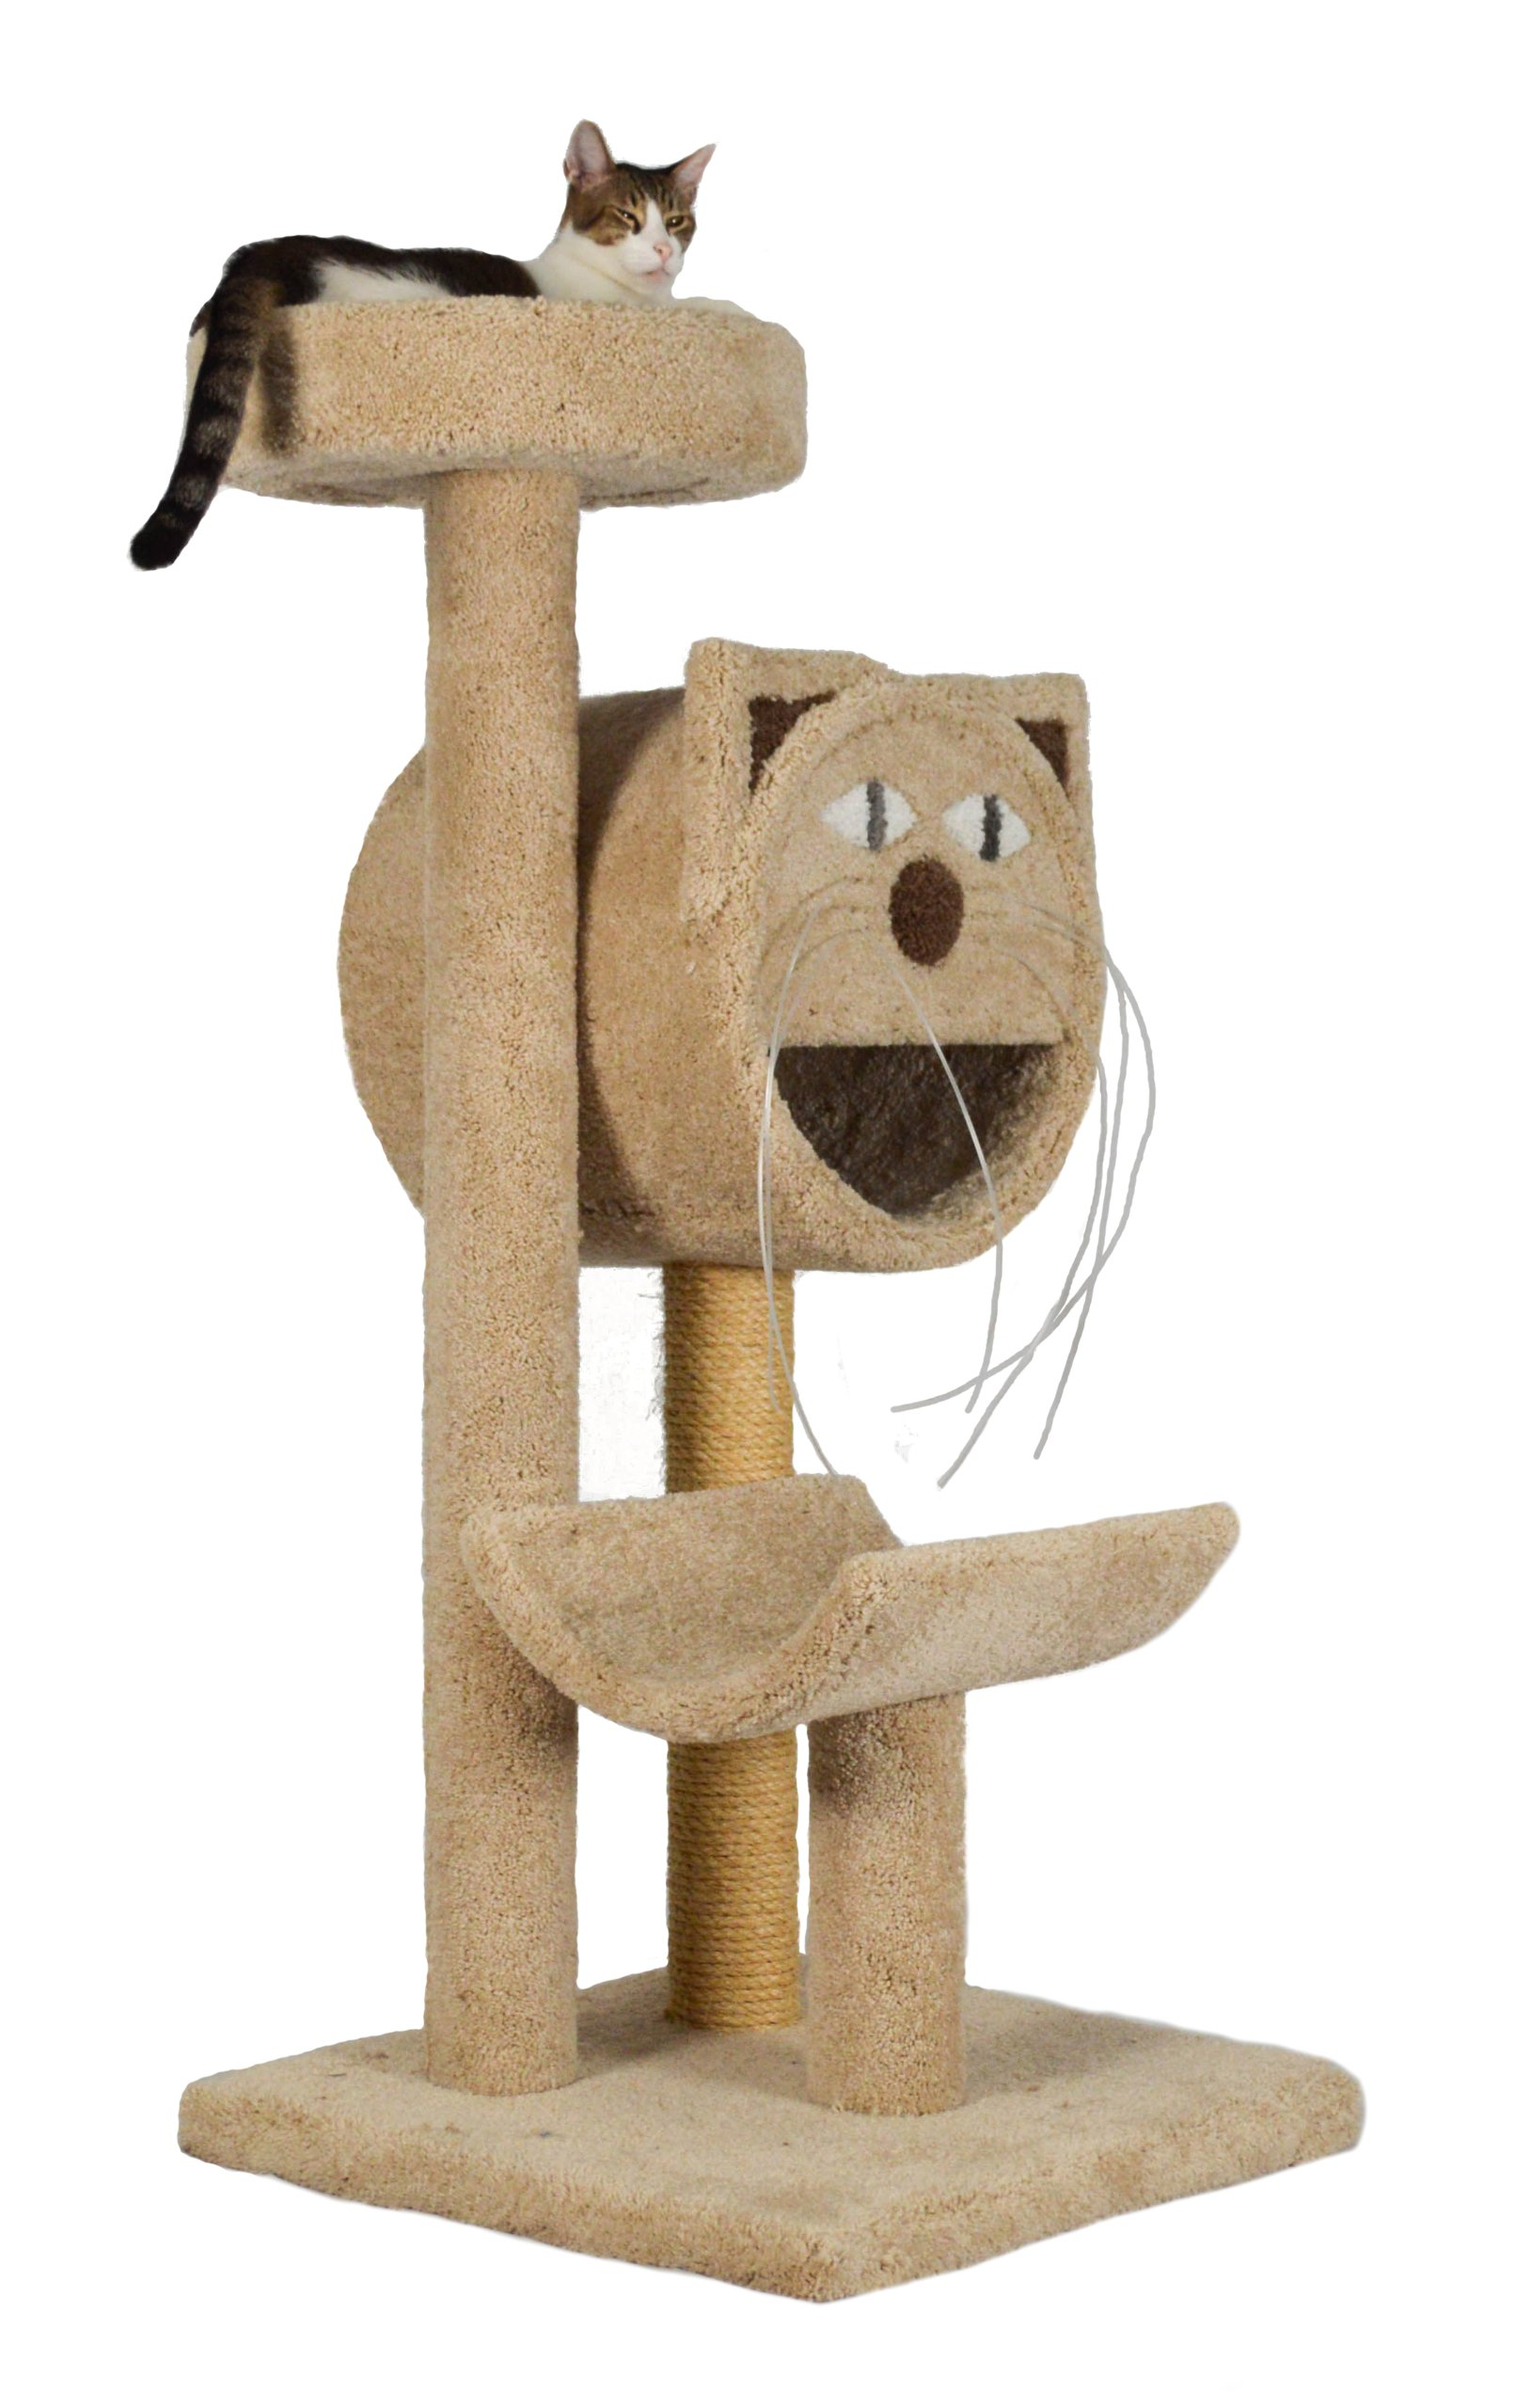 Molly and Friends ''Molly's Choice'' Premium Handmade 3-Tier Cat Tree with Sisal, Model 283, Beige